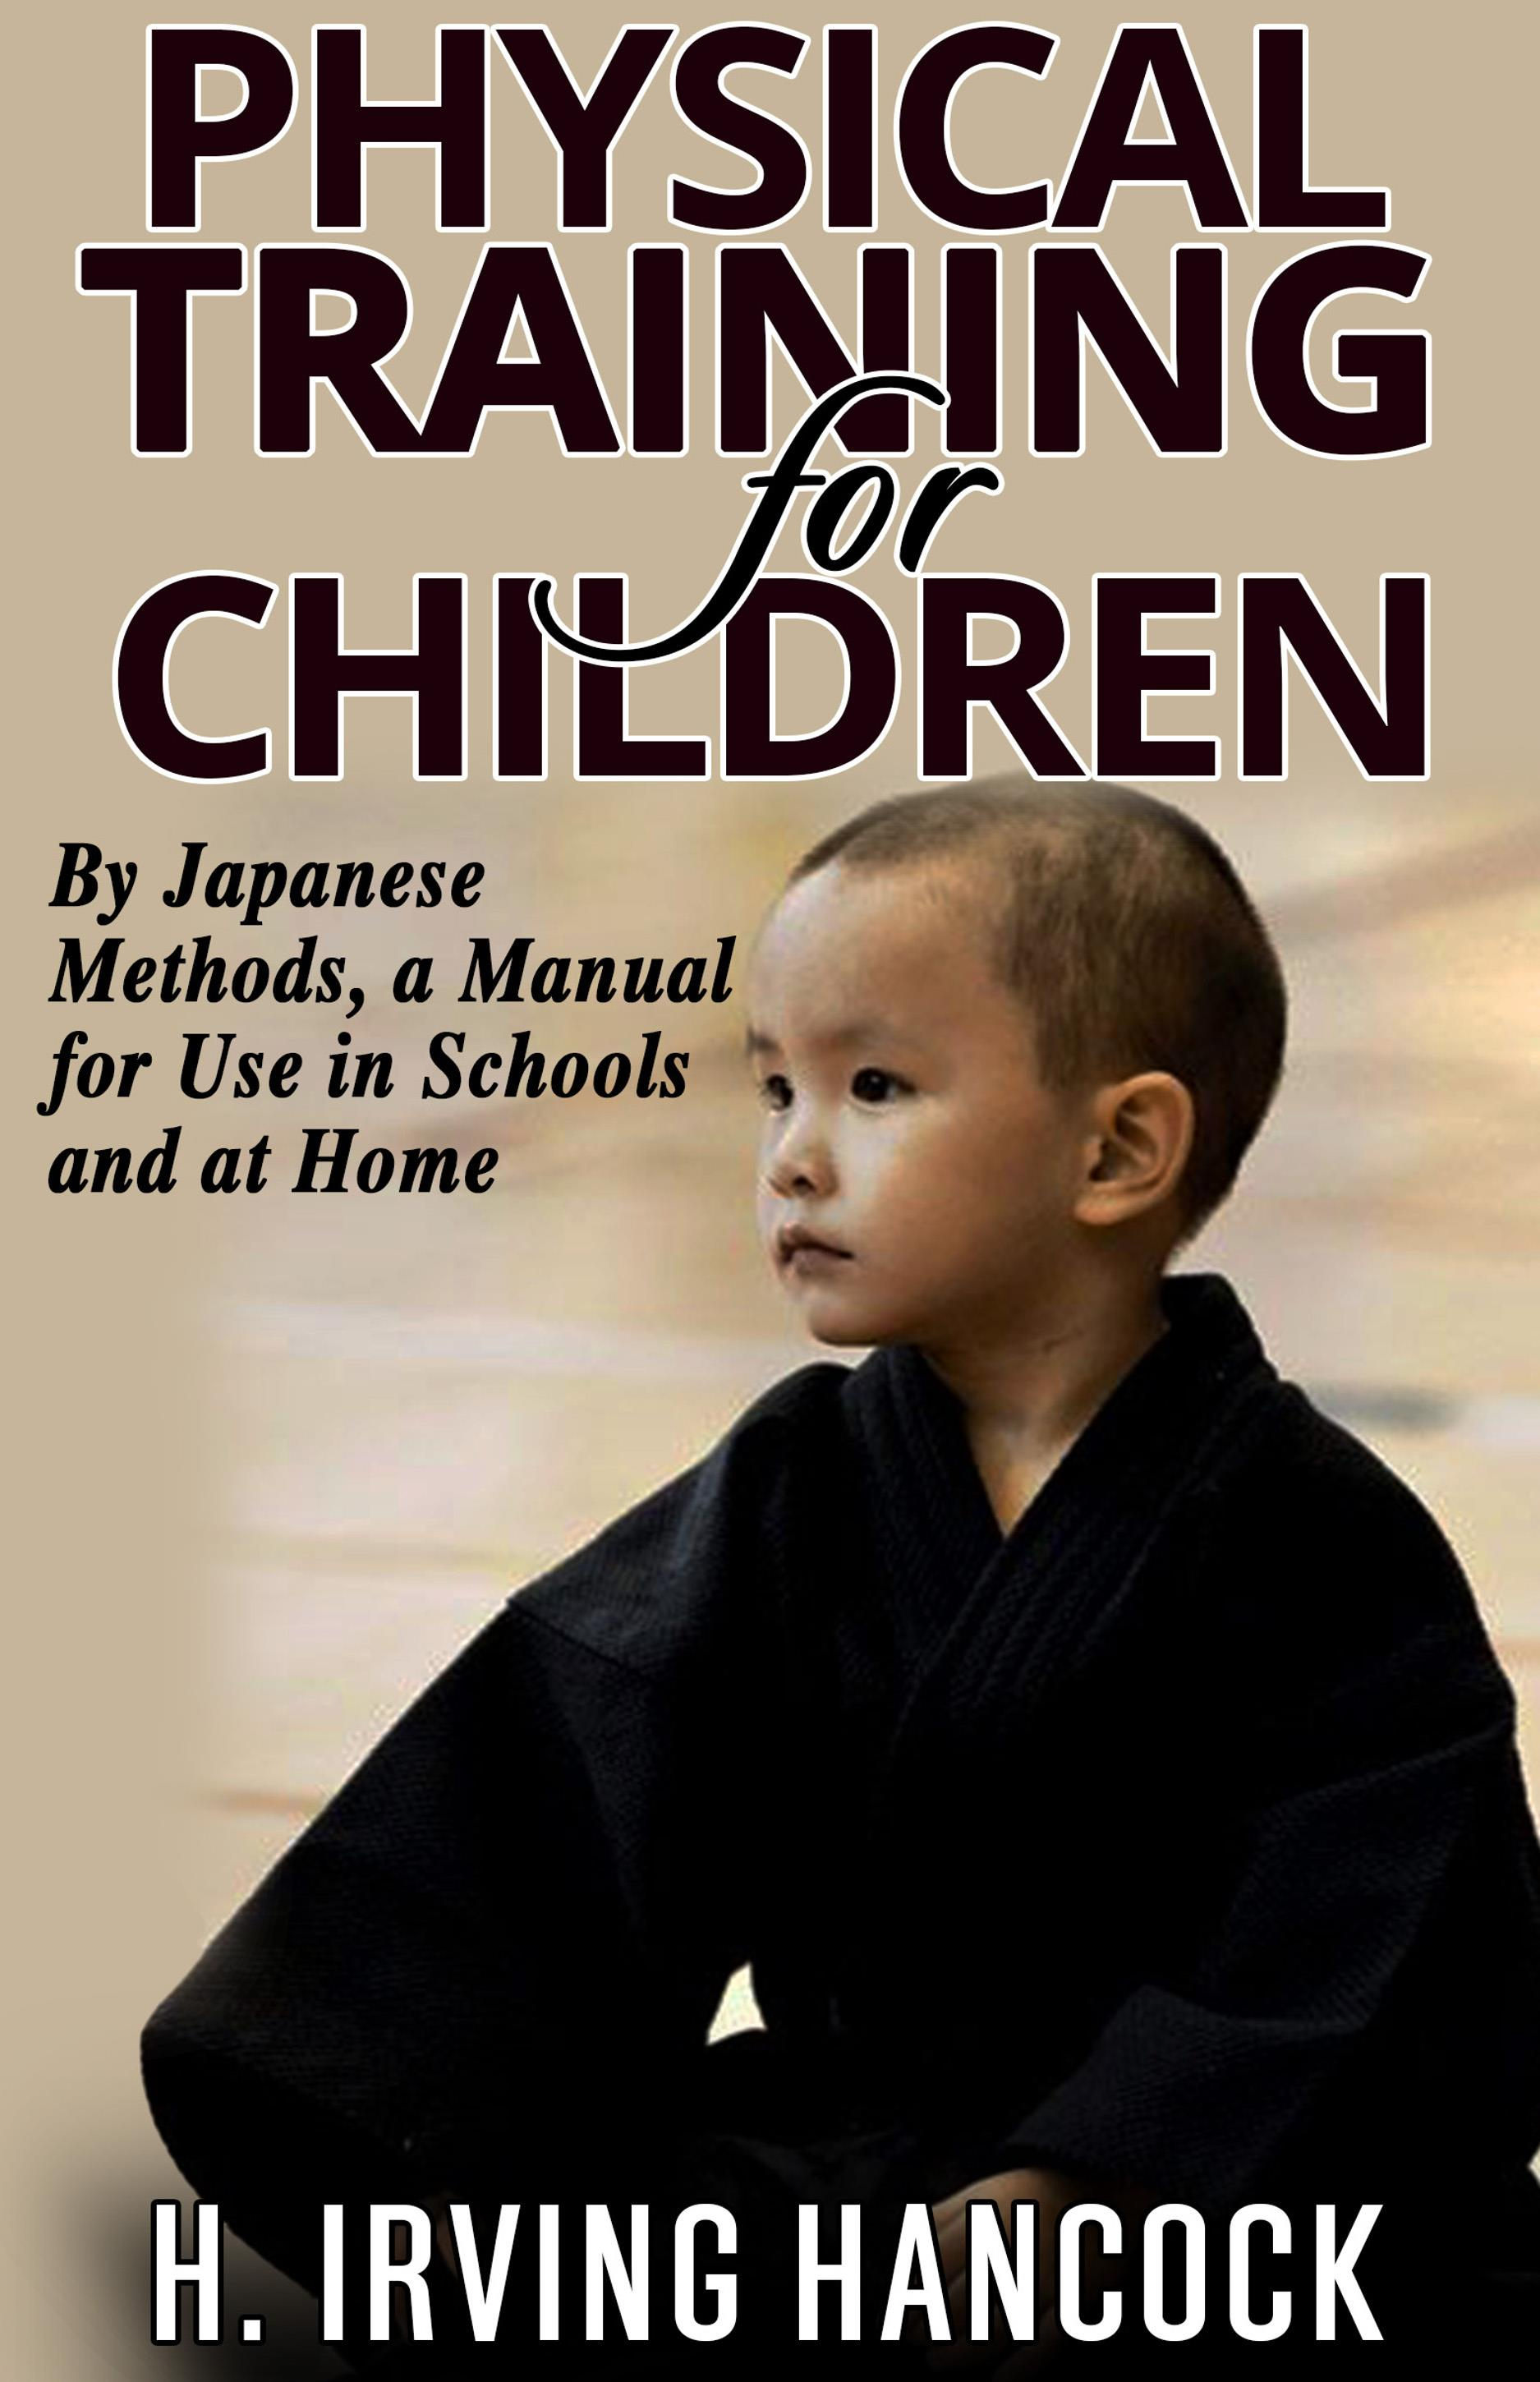 Physical Training For Children - By Japanese methods: a manual for use in schools and at home